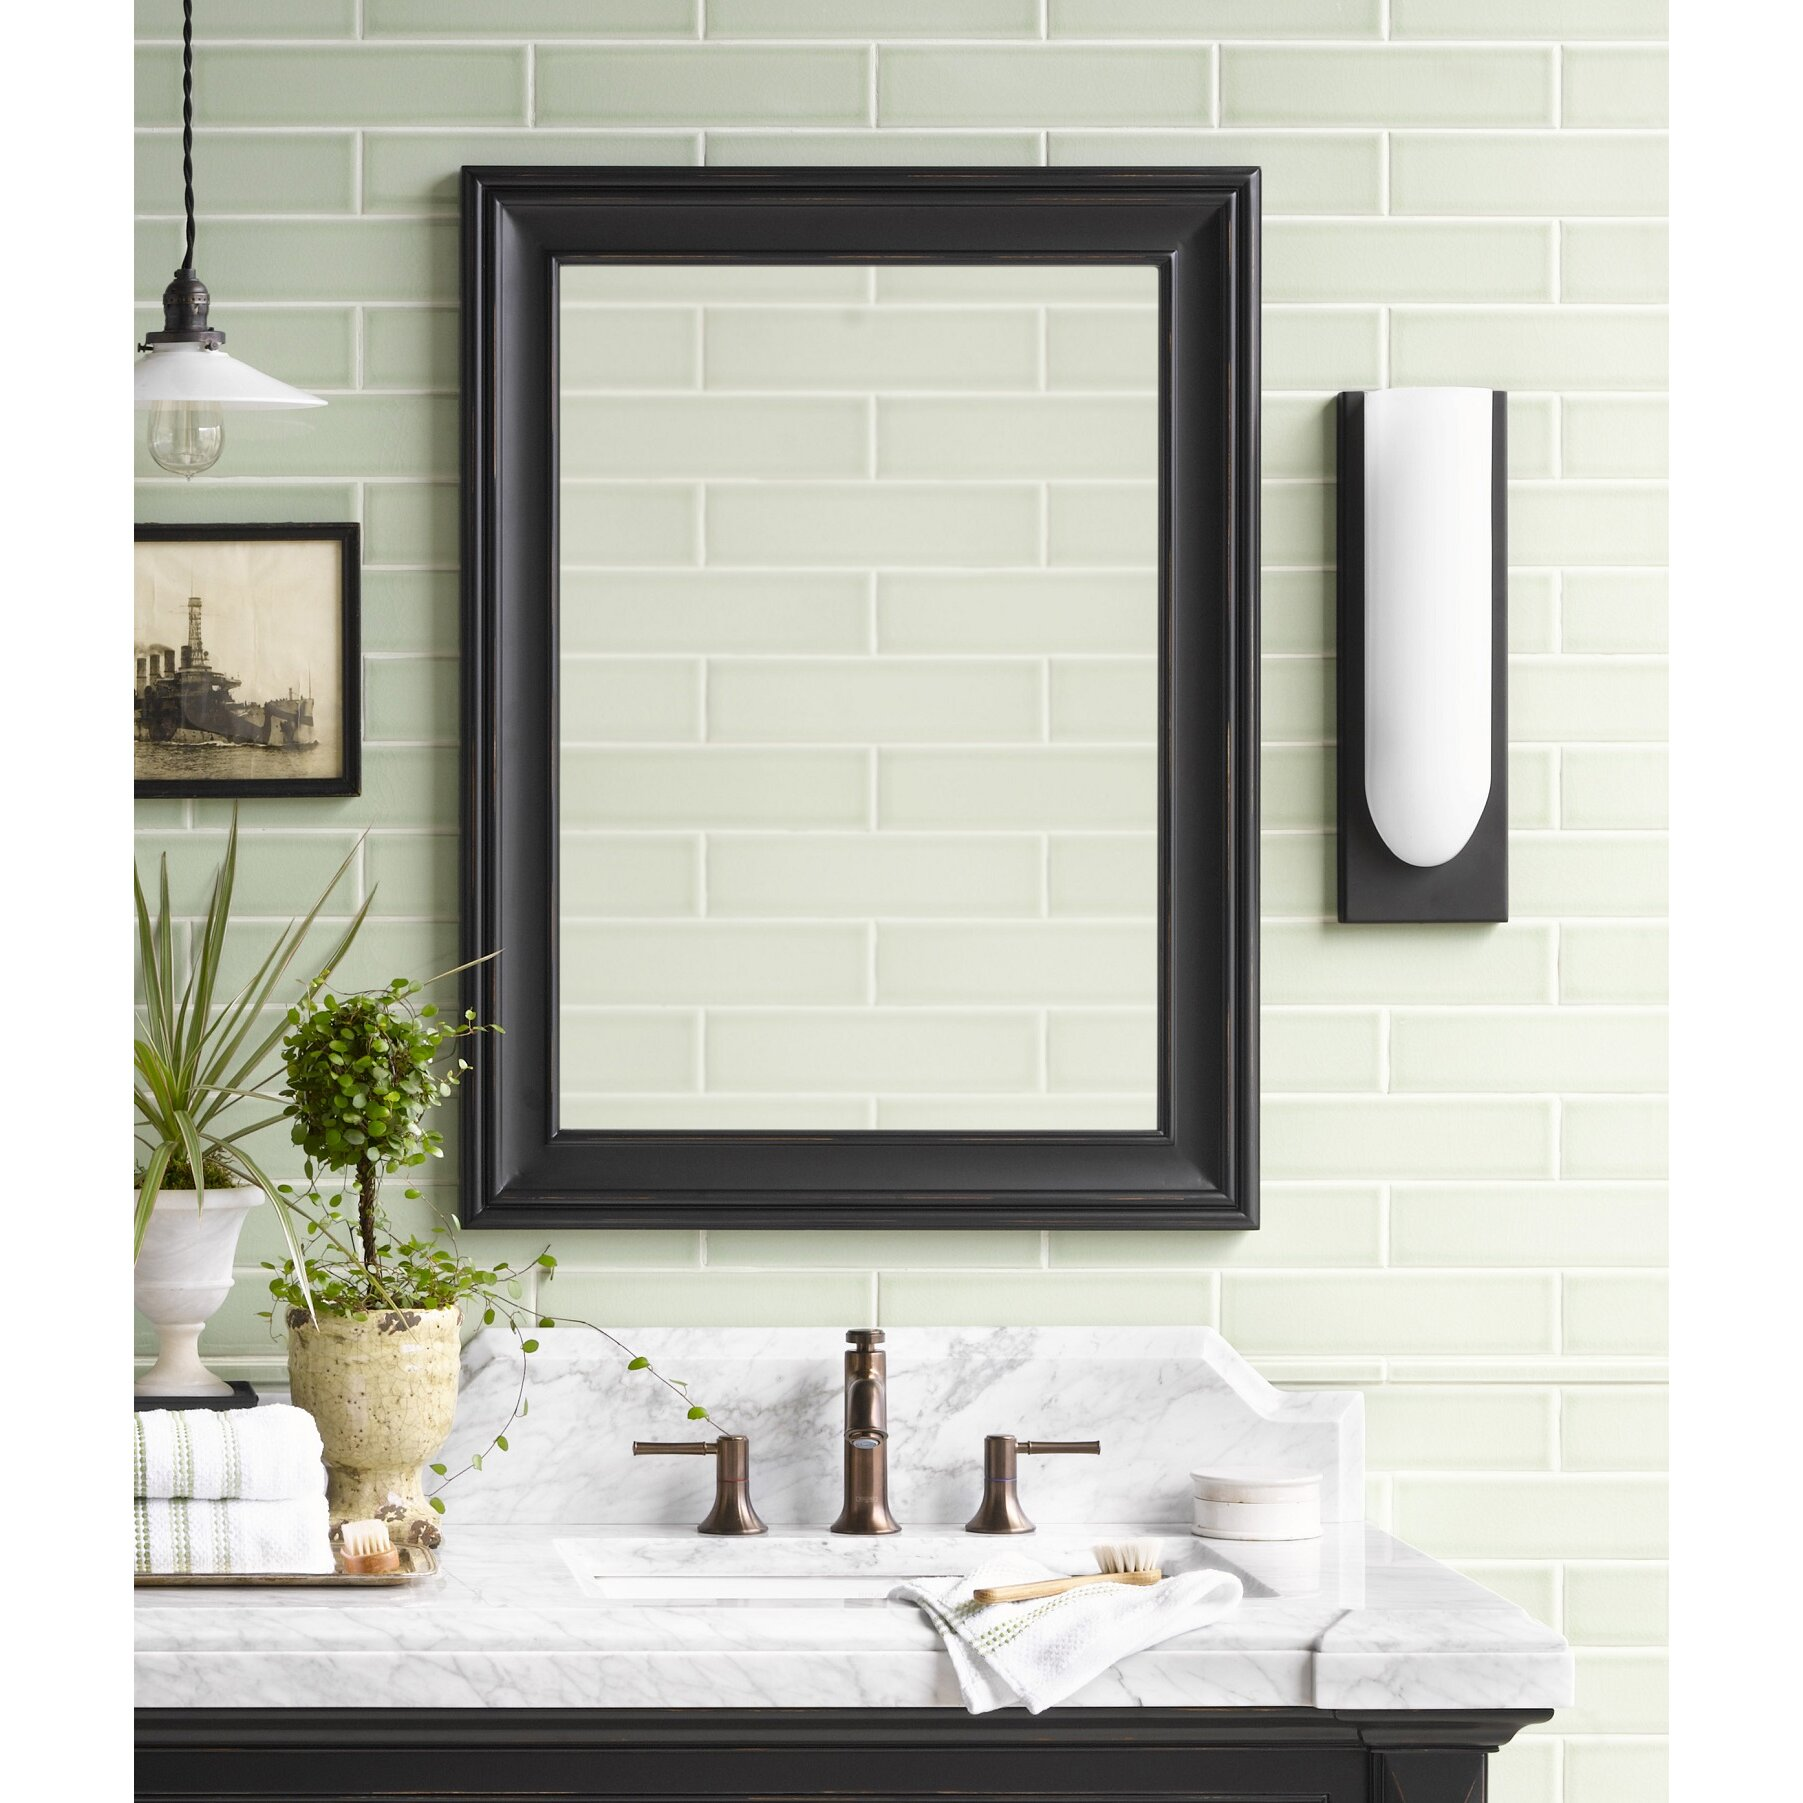 Traditional 24 x 32 solid wood framed bathroom mirror in antique black wayfair for Cherry wood framed bathroom mirrors